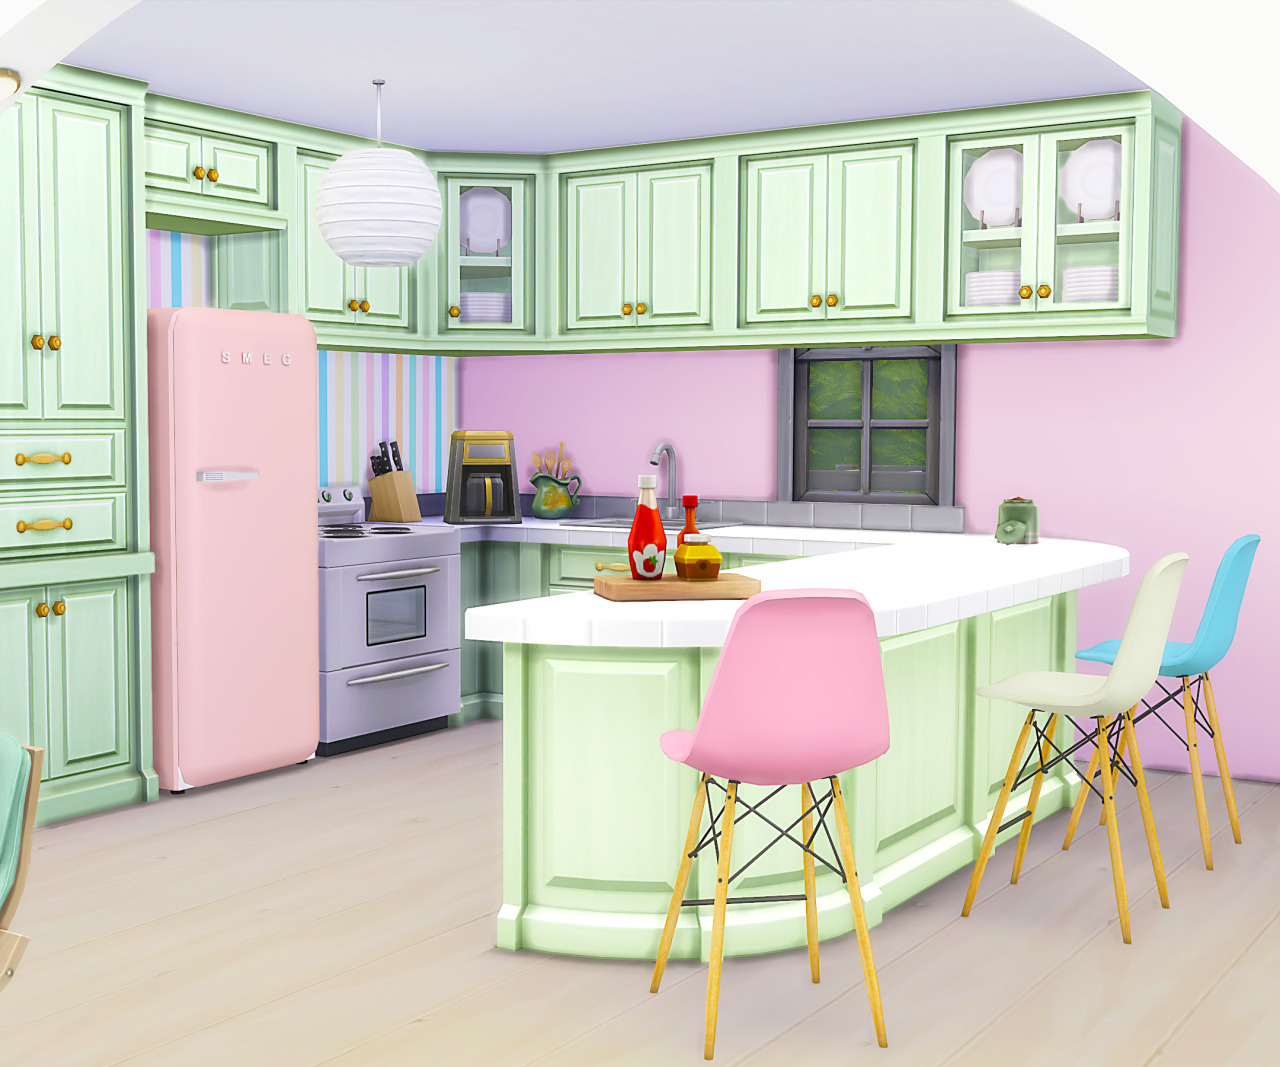 Sims Stuff 4 Kitchen: My Sims 4 Blog: Pink Spring House, Kitchen Recolors